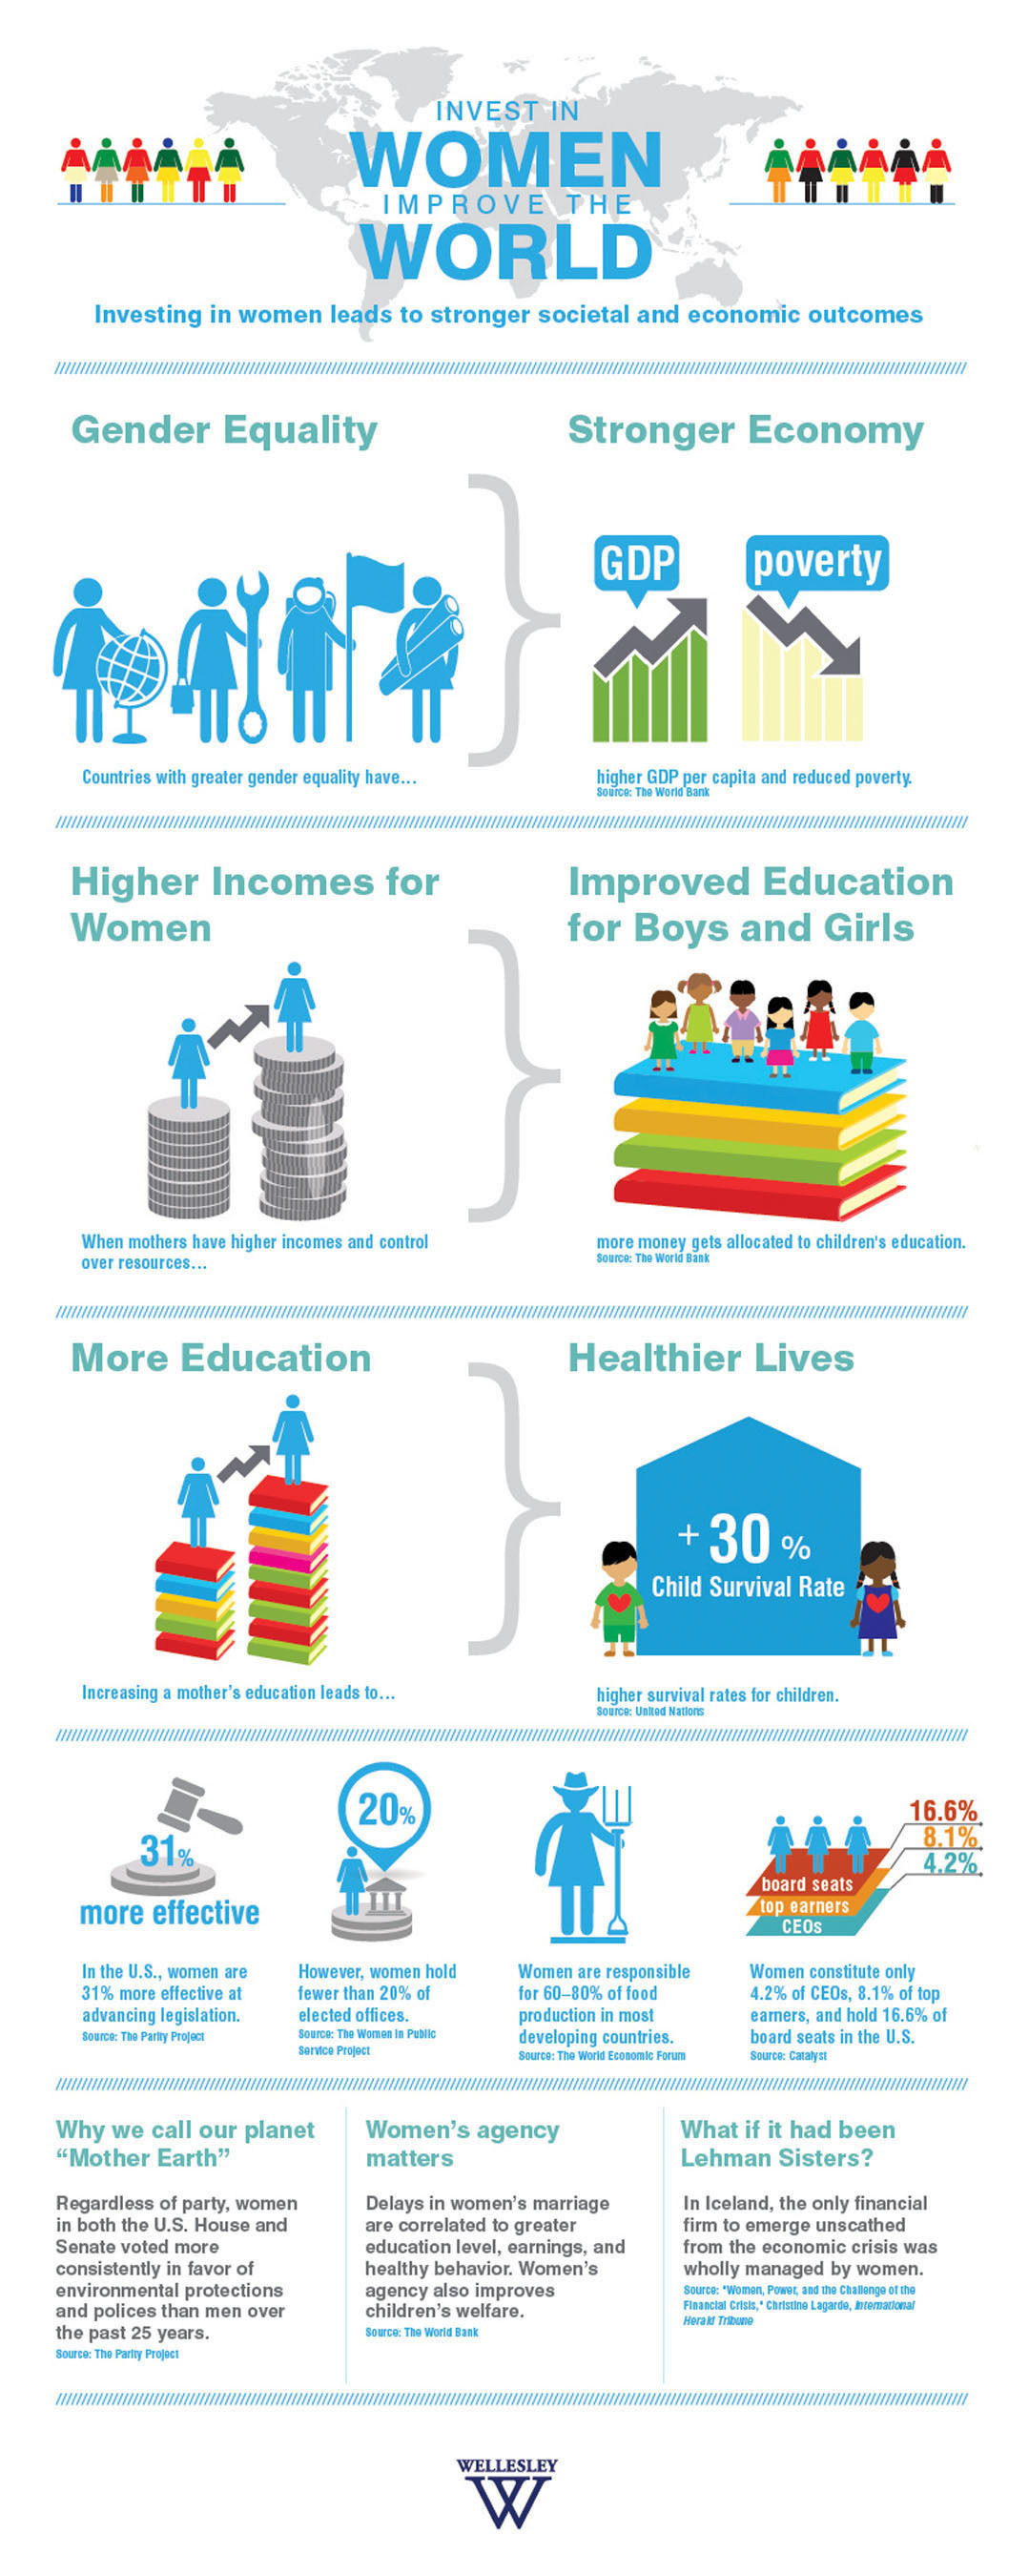 Infographic: Invest in Women, Improve the World. Wellesley College launches Women World Partners to educate the next generation of women leaders. (Credit: Wellesley/Soe Lin Post).  (PRNewsFoto/Wellesley College)